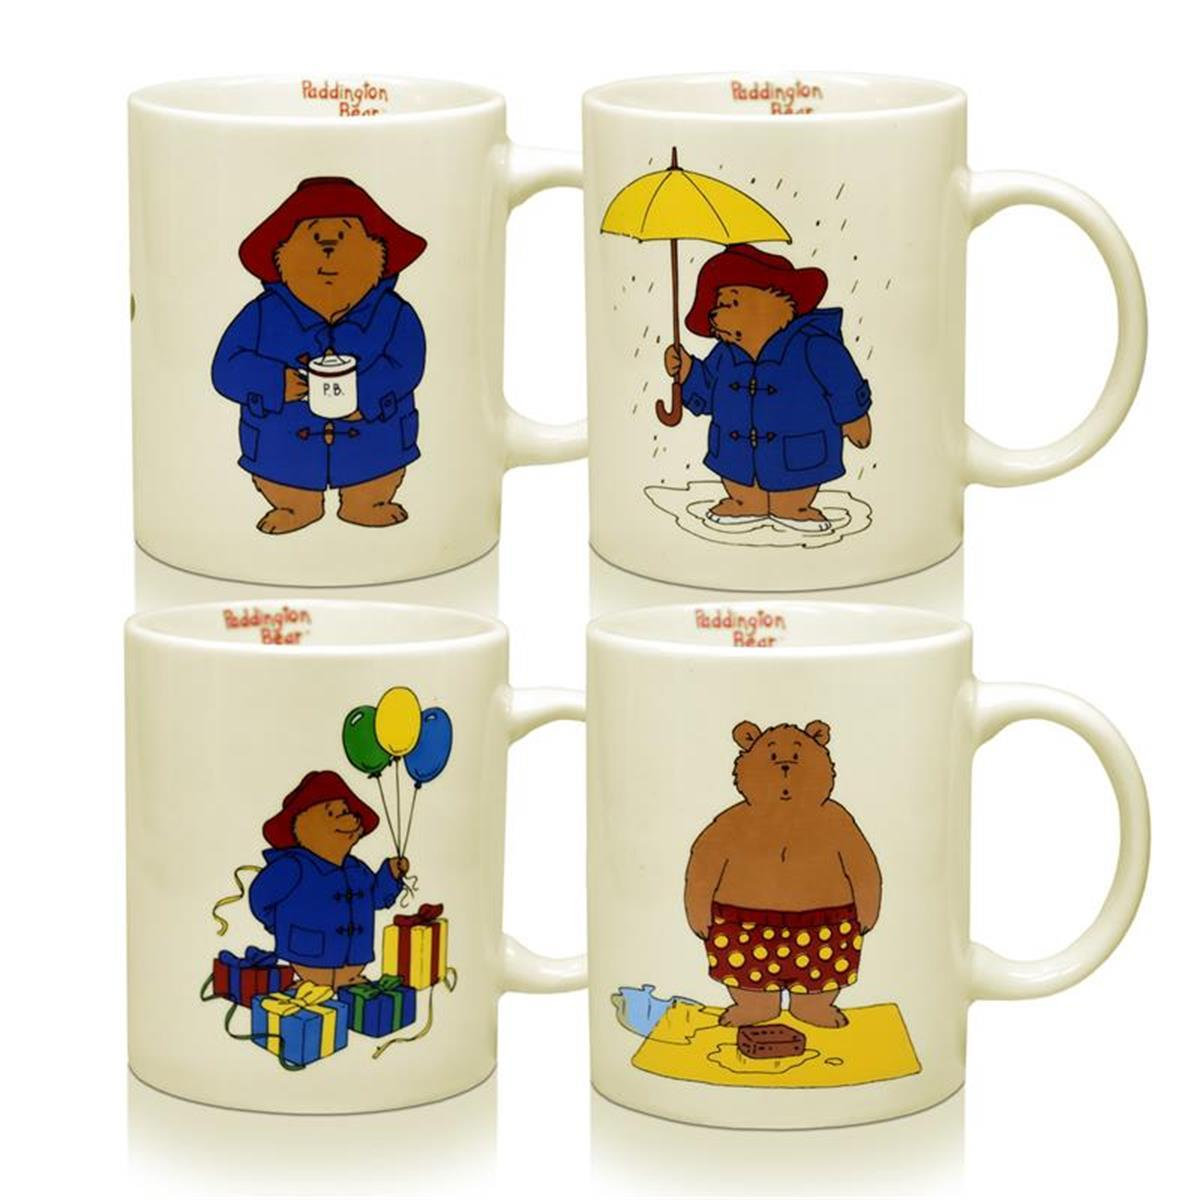 senseo douwe egberts paddington bear porzellan tassen set modell a b c d 250ml. Black Bedroom Furniture Sets. Home Design Ideas